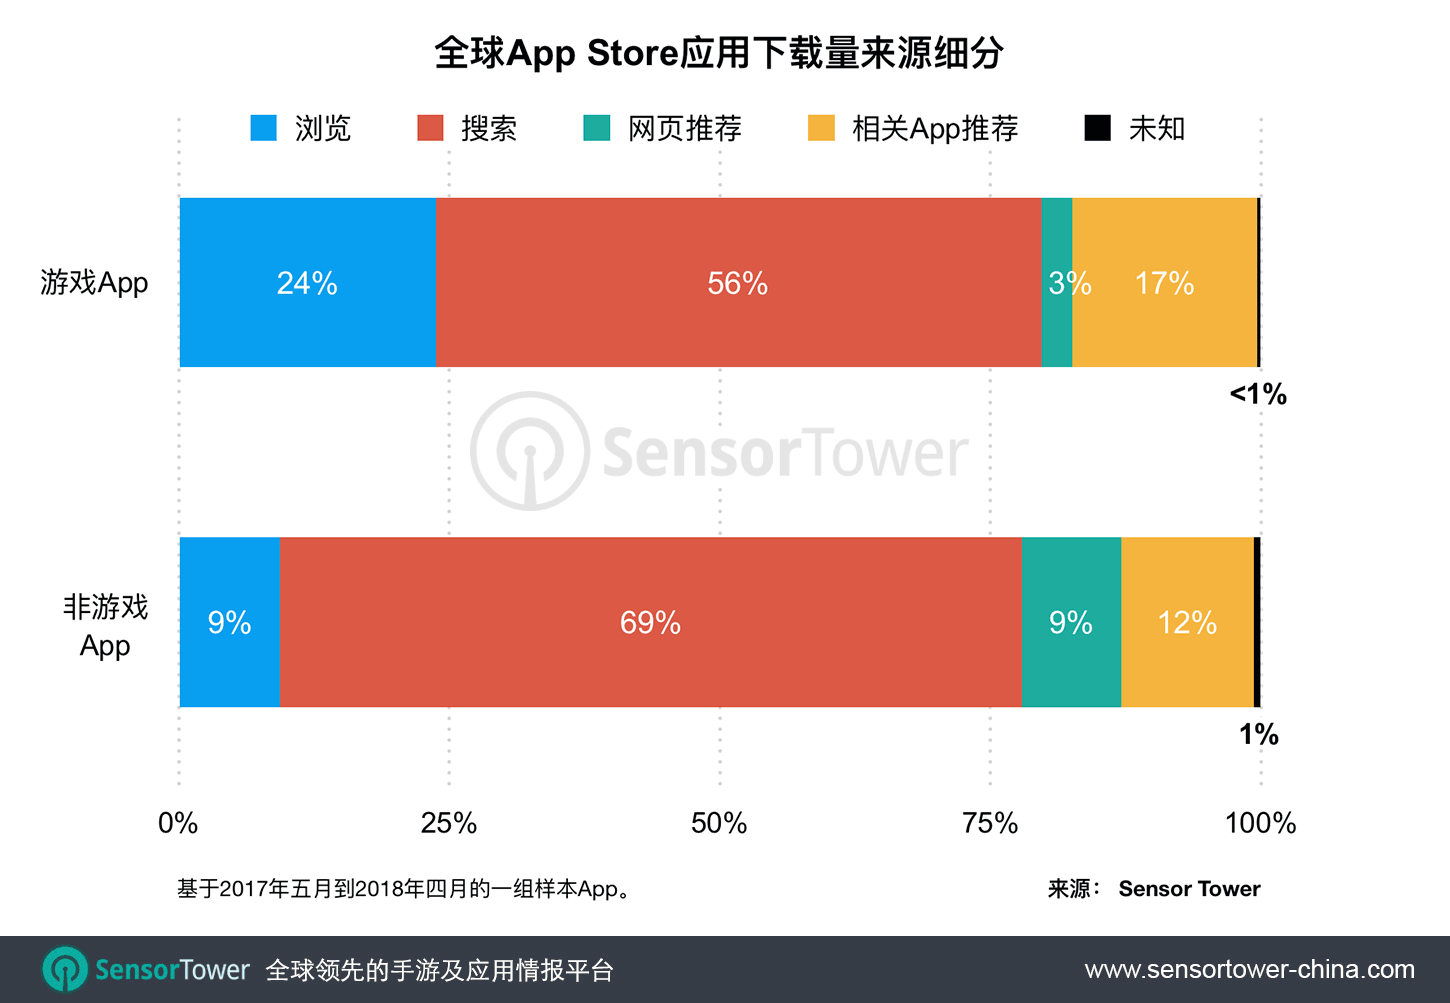 Chart showing the percentage of game and non-game downloads that come from all sources on the App Store worldwide CN  - app store installs by source cn - iOS 11新版App Store亮相以来,全球用户在商店中的浏览推动了15%的下载量,高于改版前